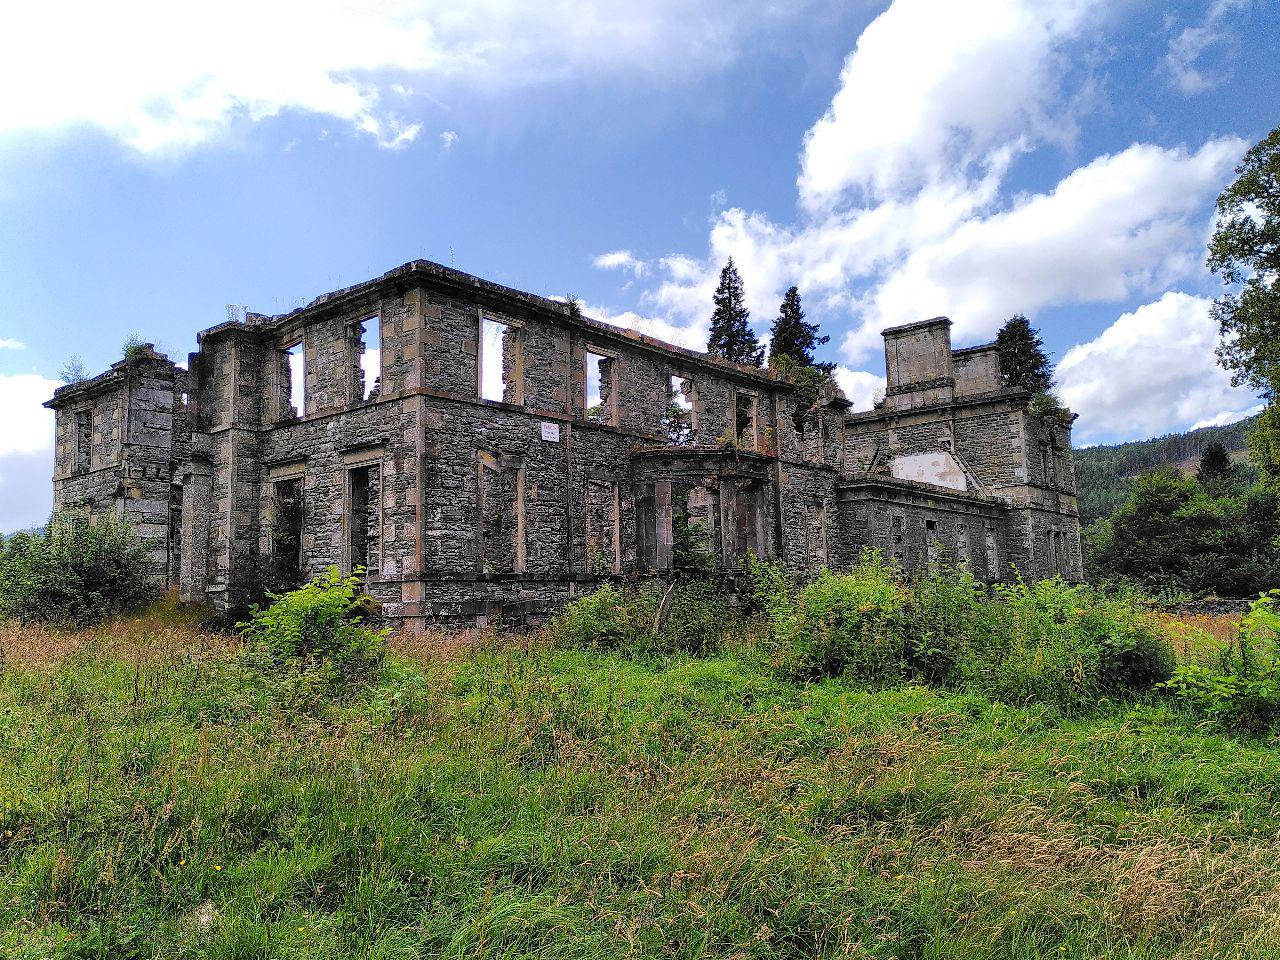 Large, 3 story, mansion that is derelict. No roof and bare stone. Grass is overgrowing in the foreground. Clear skies above.